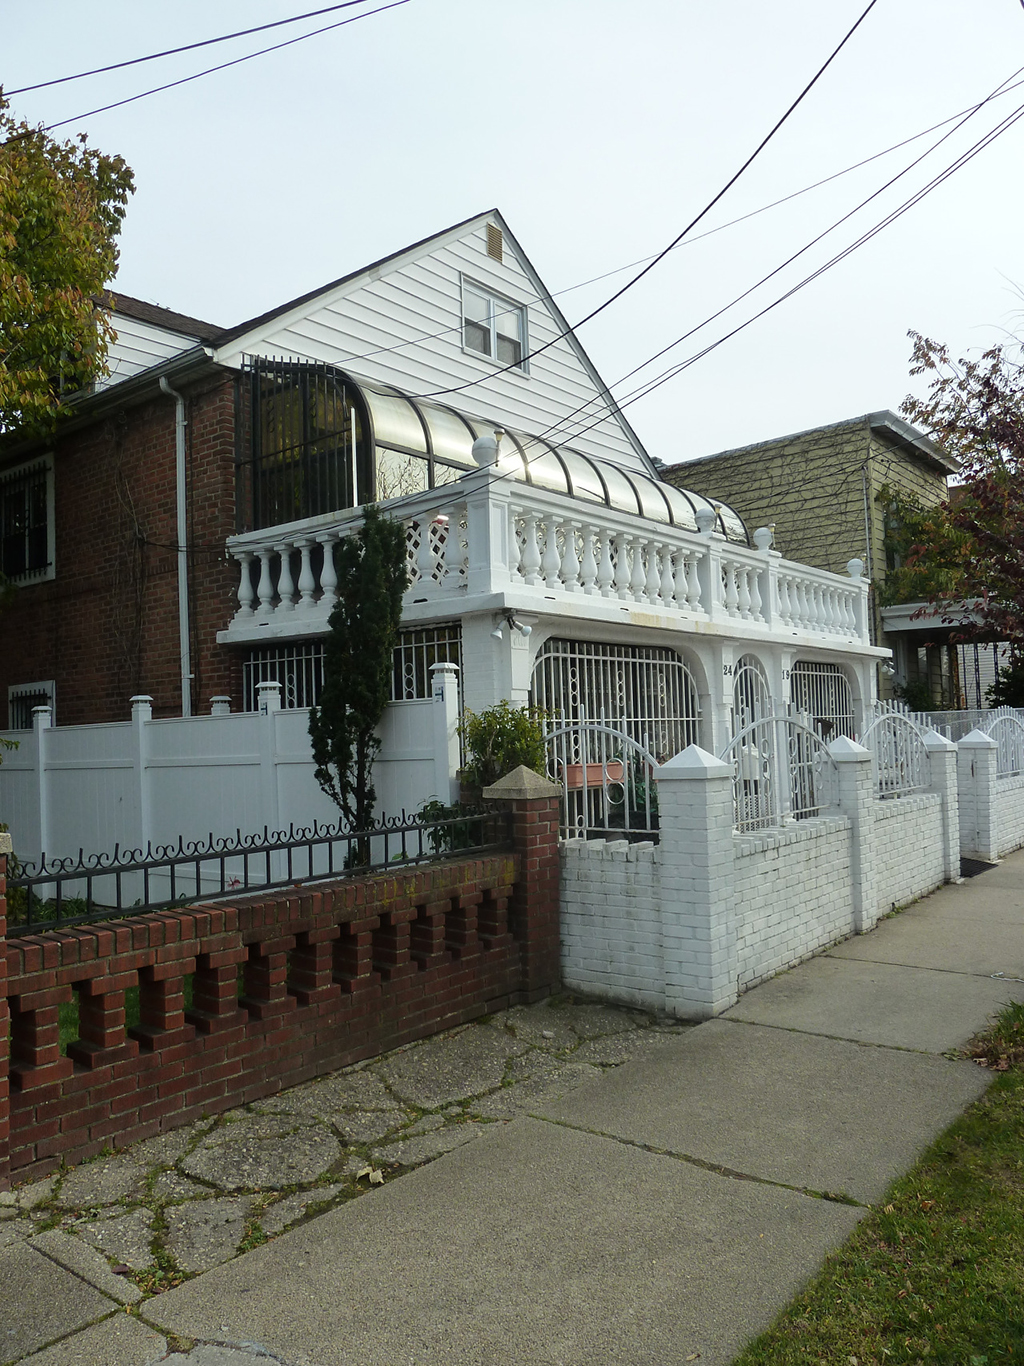 Detached (multi-family) house in East Elmhurst, 2014